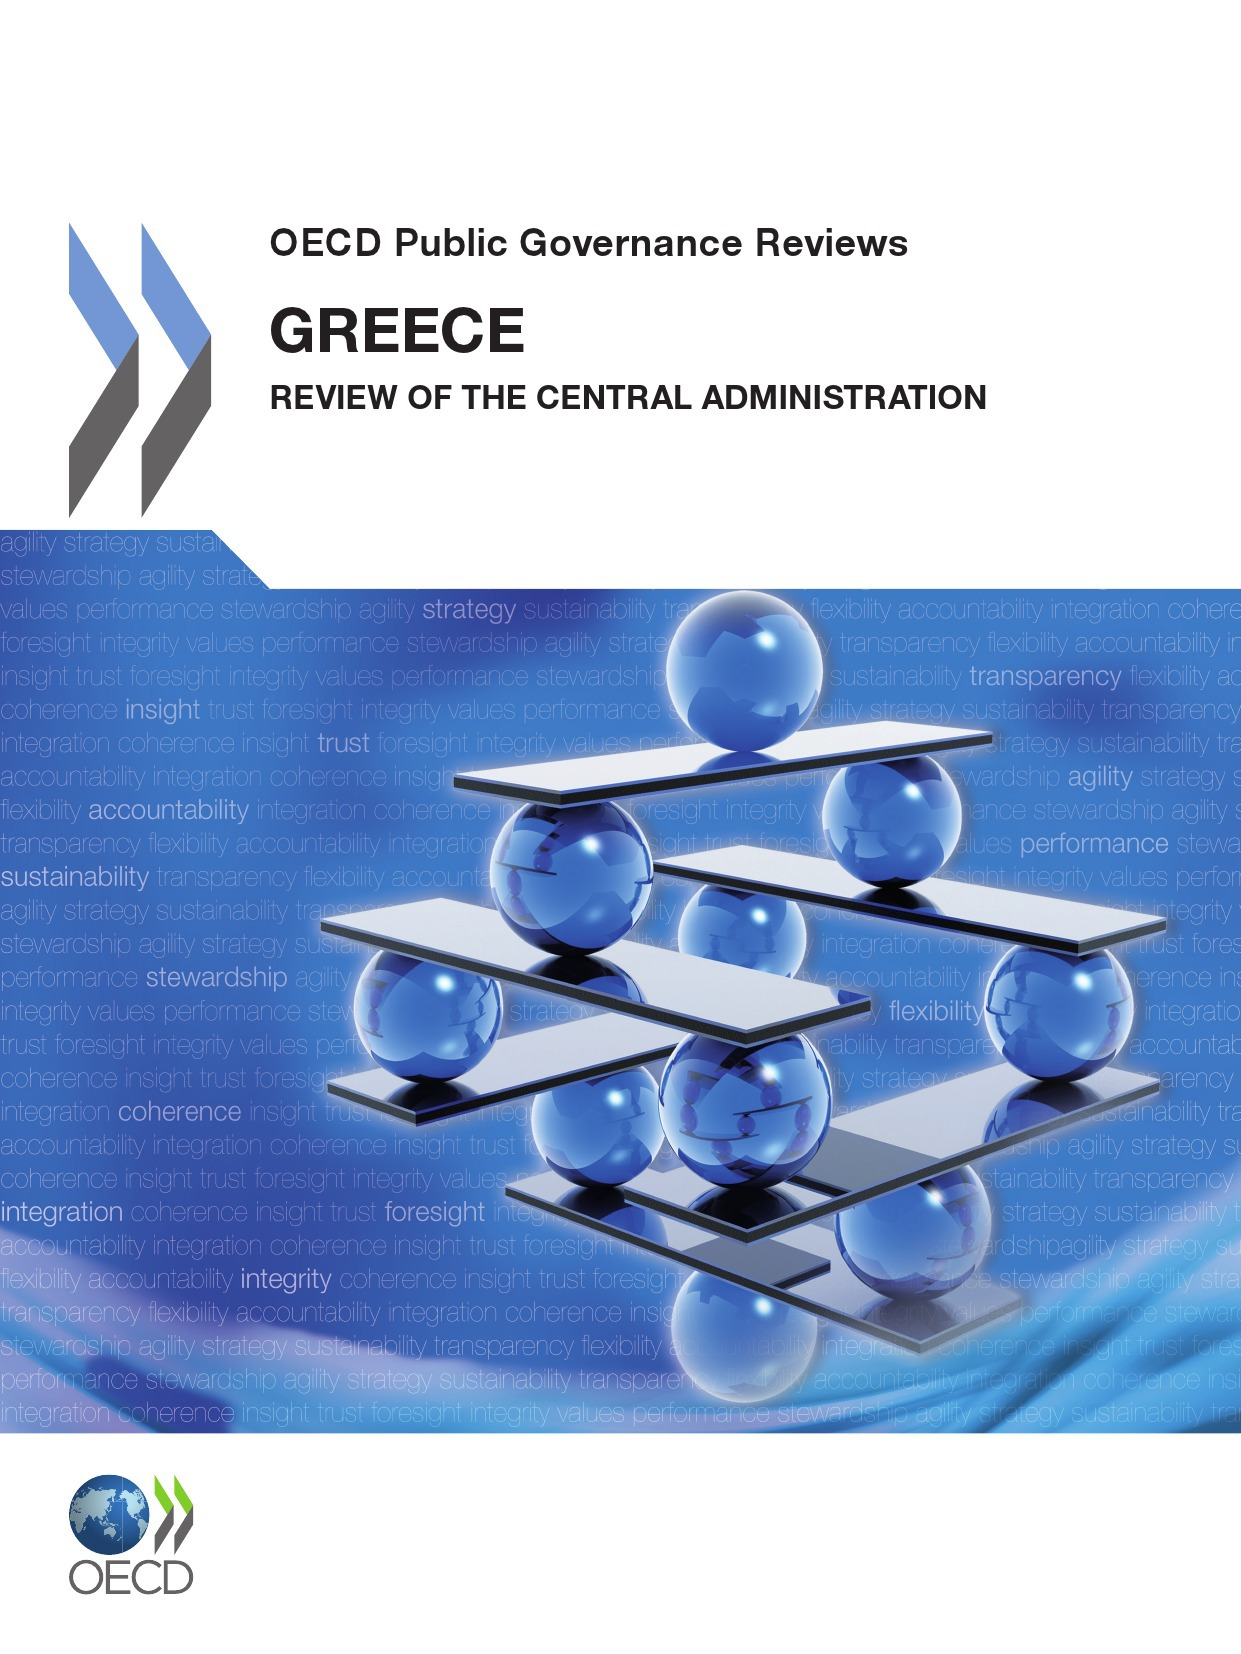 Collectif OECD public governance reviews ; Greece, review of the central administration